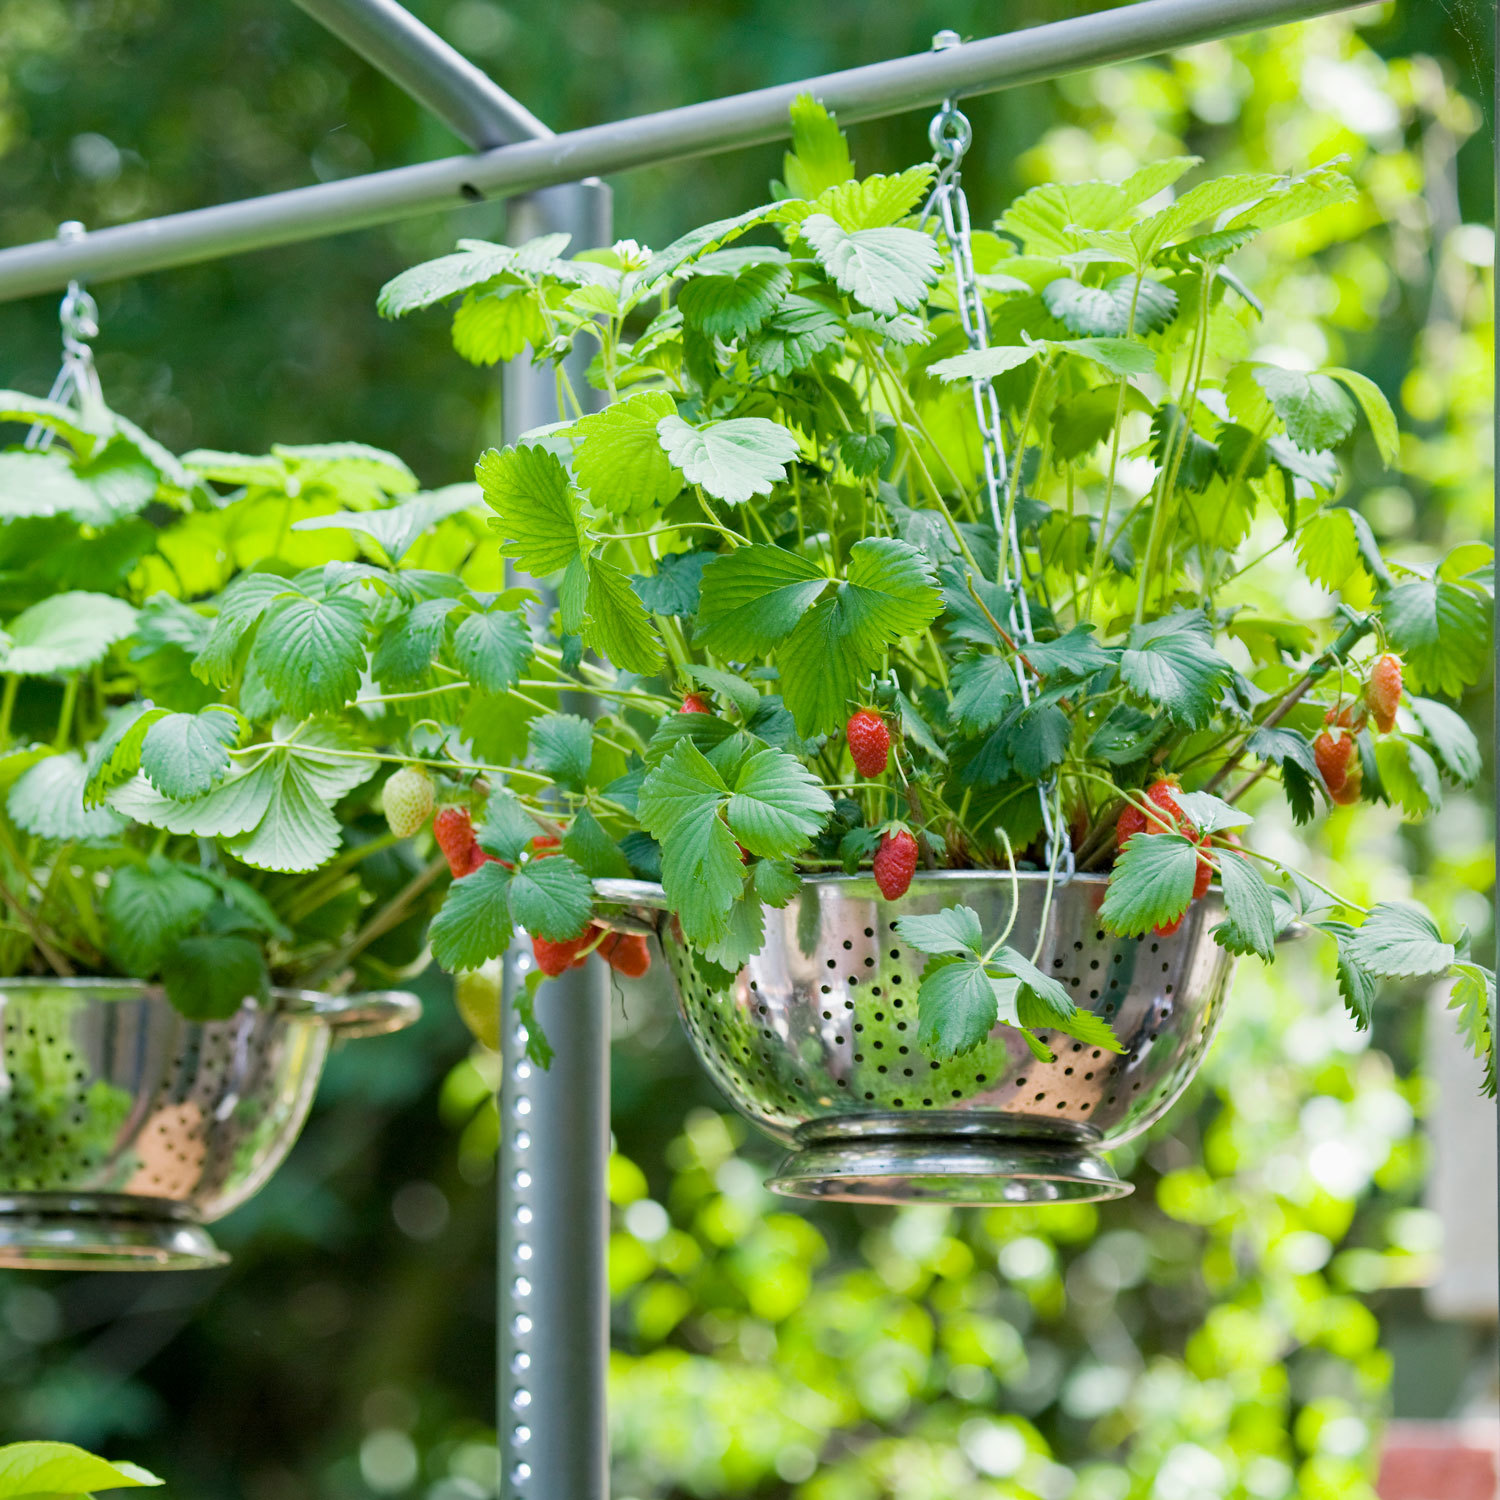 Hang a Basket of Strawberry Plants for an Easy and Adorable Garden Project